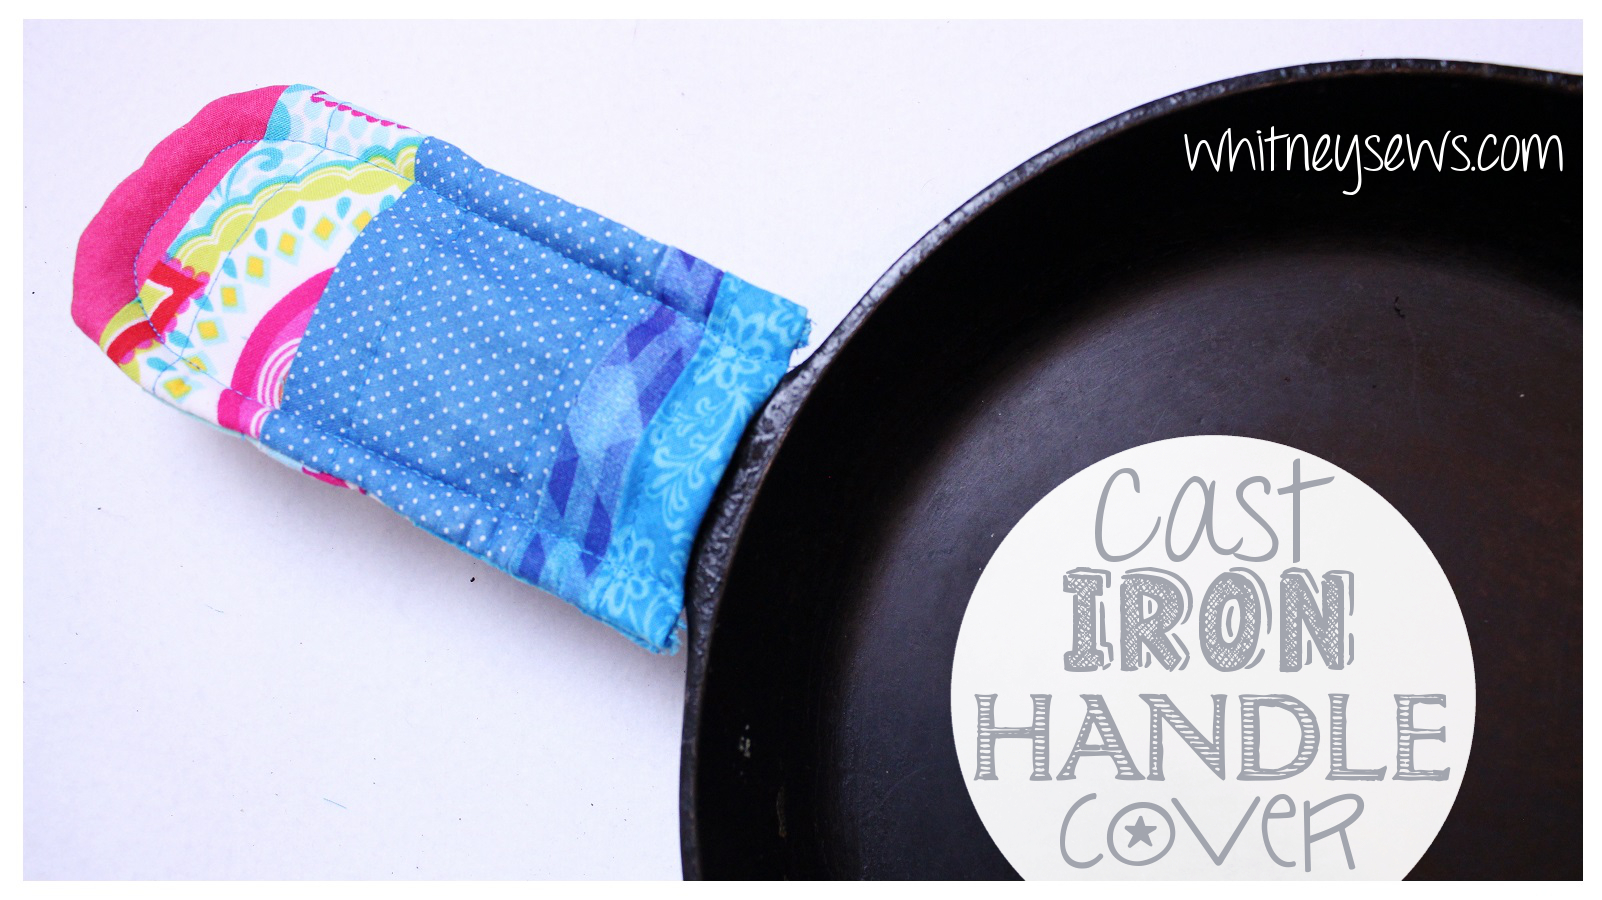 Diy Handle Cover For Your Cast Iron Skillet Whitney Sews